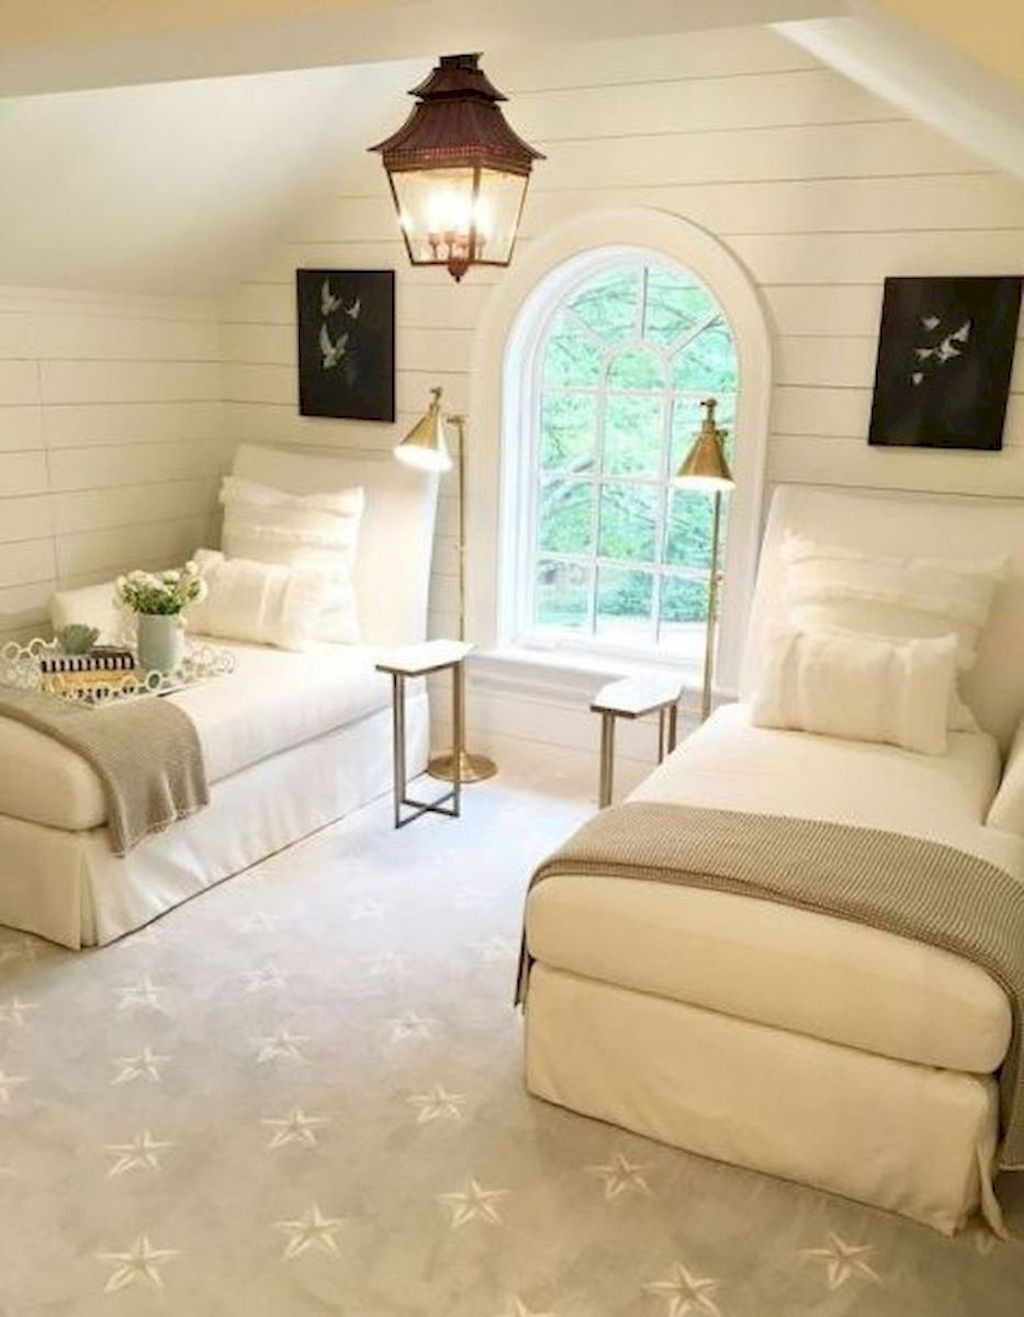 Amazing Farmhouse Style For Cozy Bedroom Decorating Ideas32